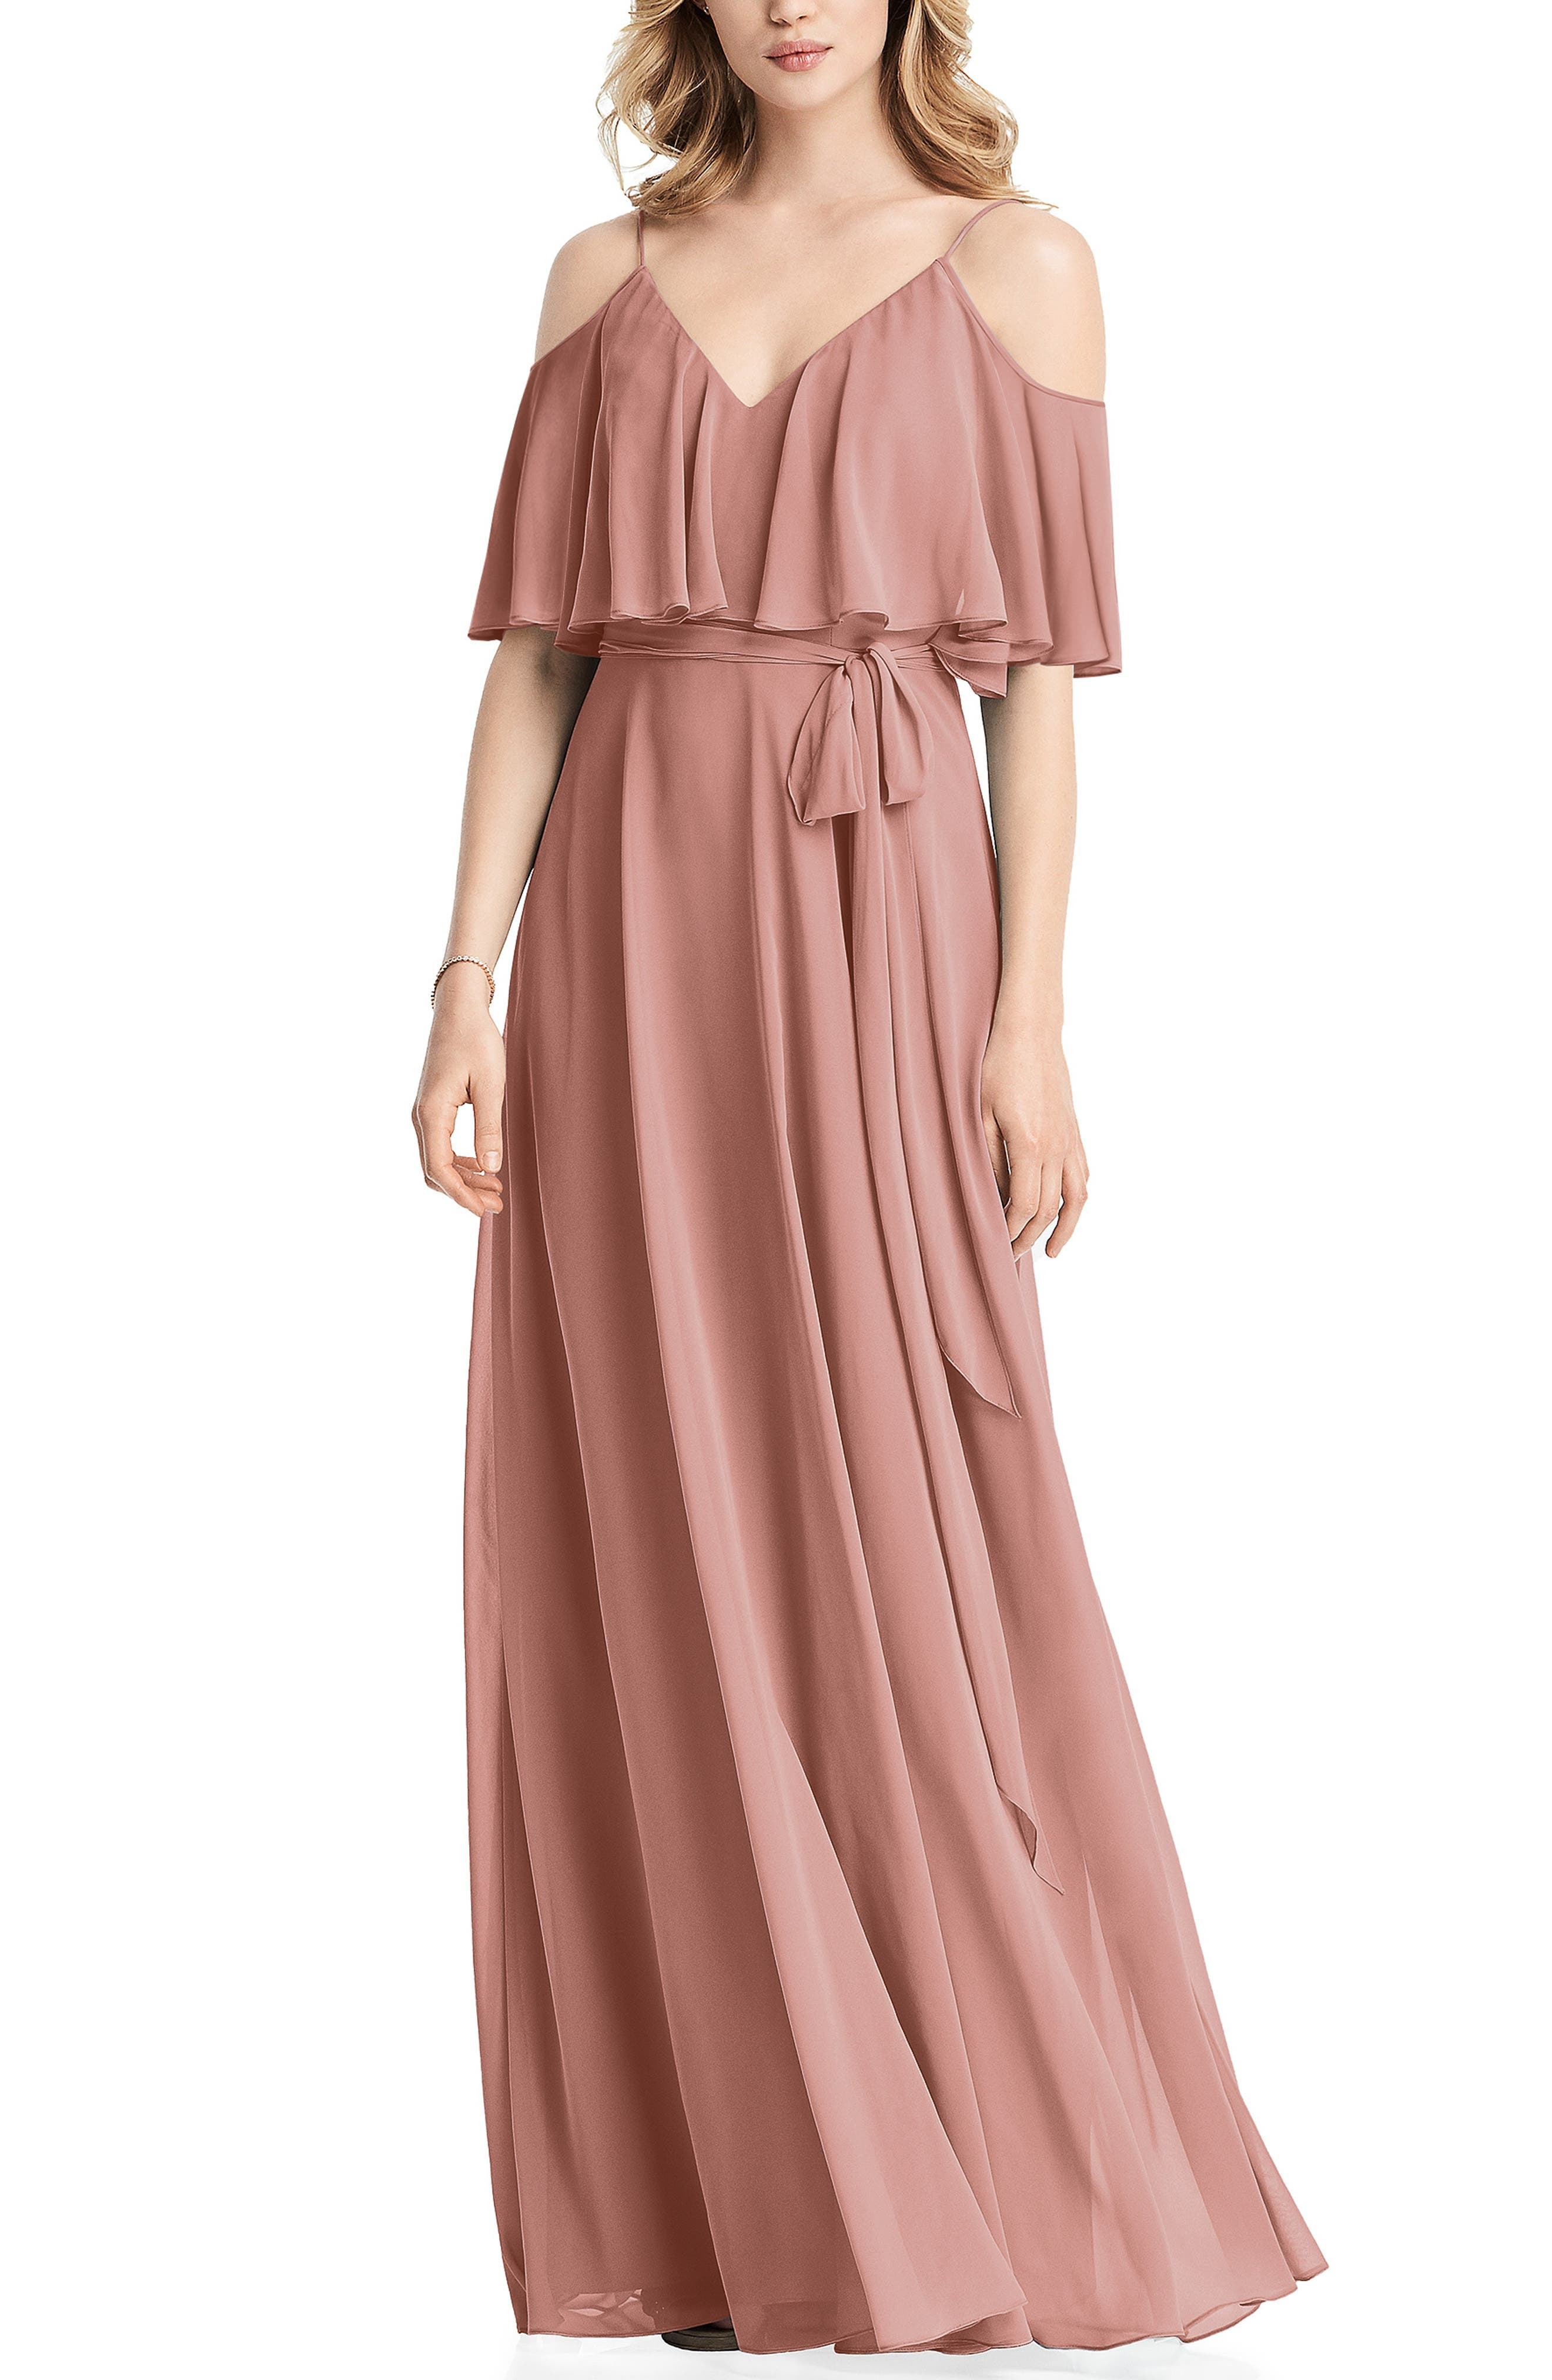 70s Prom, Formal, Evening, Party Dresses Womens Jenny Packham Cold Shoulder Chiffon Gown Size 18 similar to 14W - Pink $284.00 AT vintagedancer.com